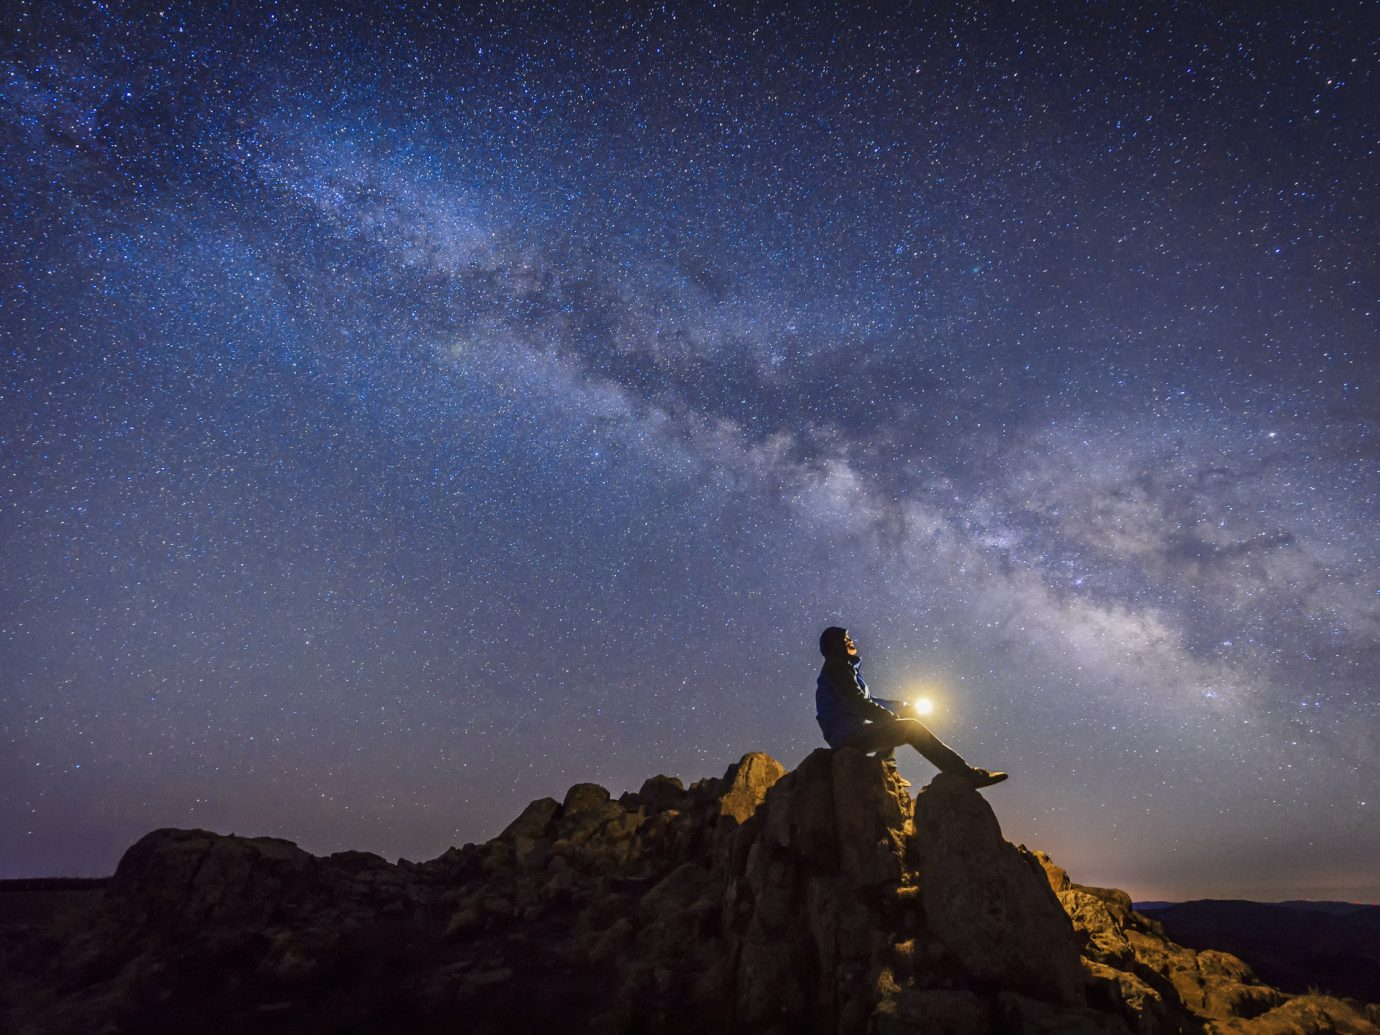 Trip Ideas outdoor sky mountain galaxy night star atmosphere astronomical object astronomy hill darkness Nature spiral galaxy moonlight air outer space dawn milky way screenshot dusk hillside Night Sky